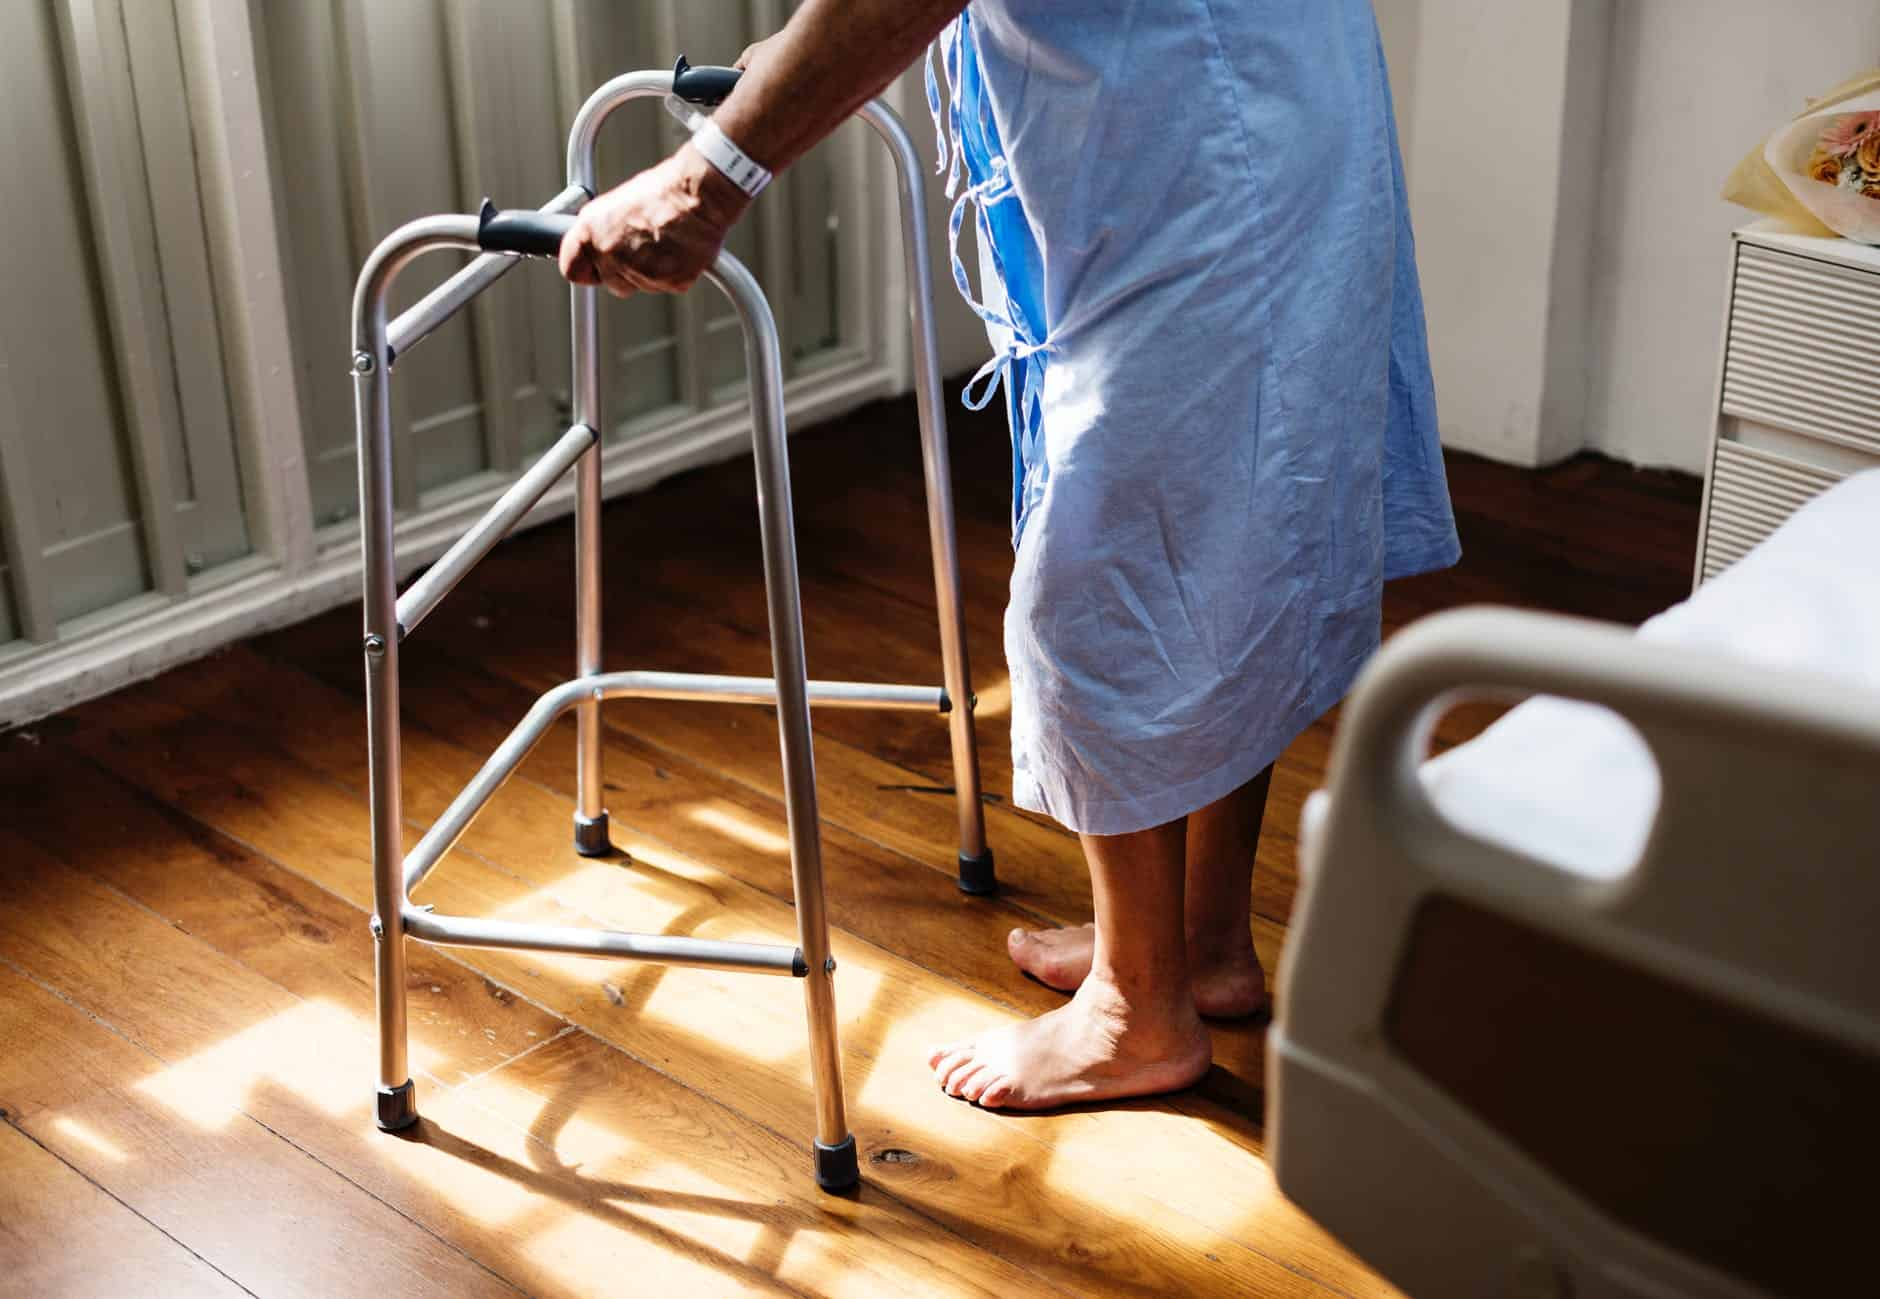 Older man in hospital gown with walker